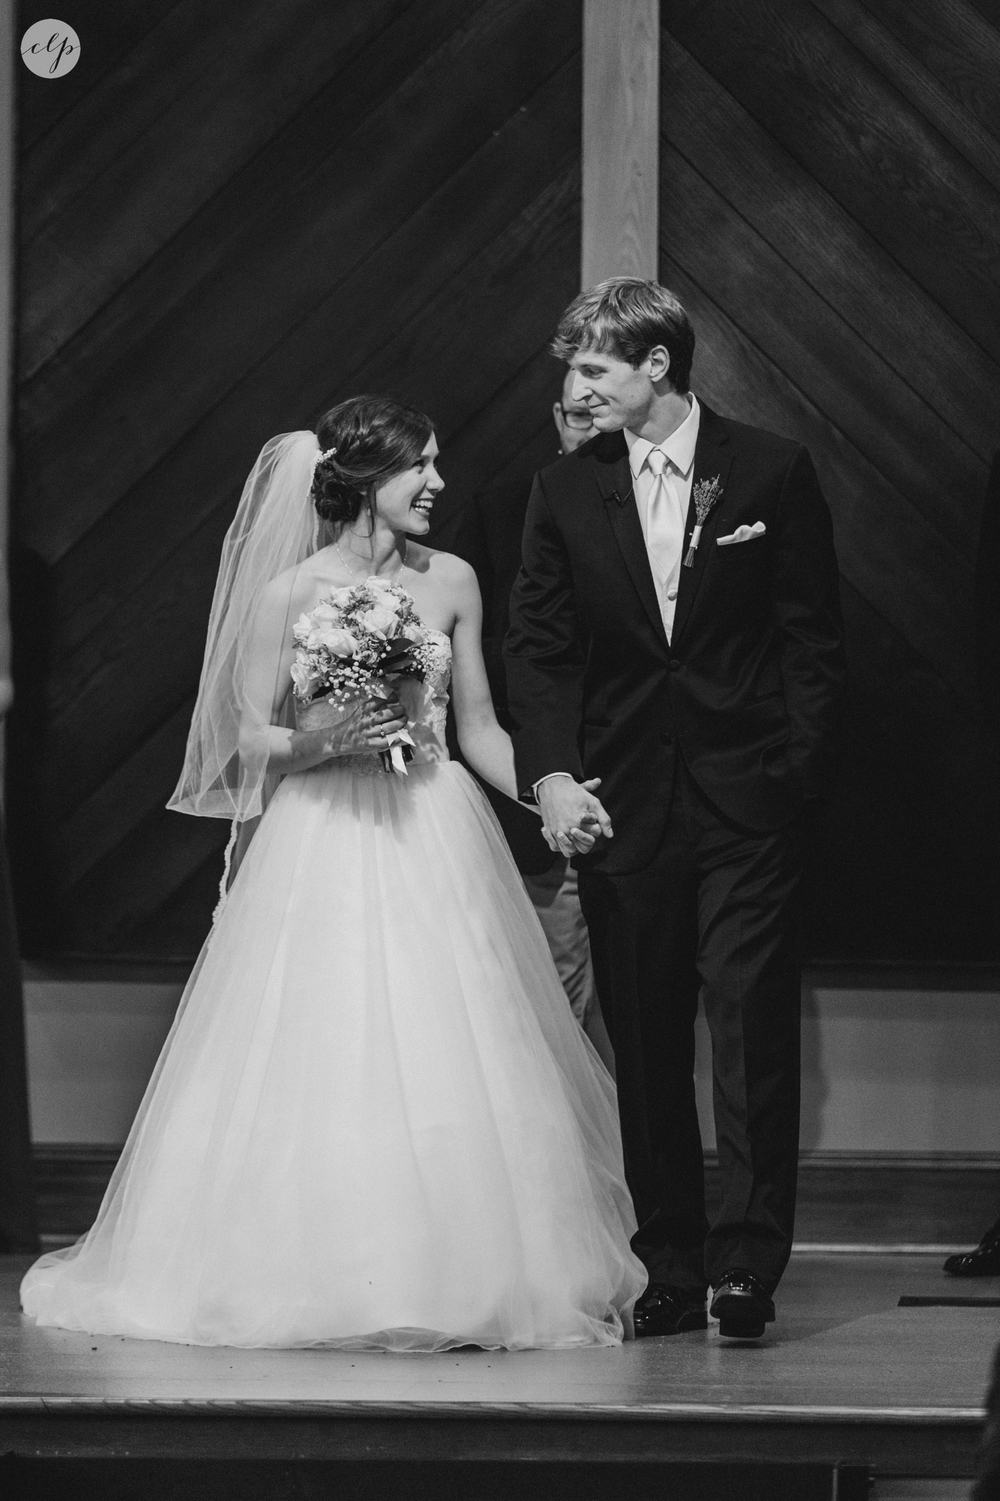 st-louis-missouri-wedding-photographer_5816.jpg